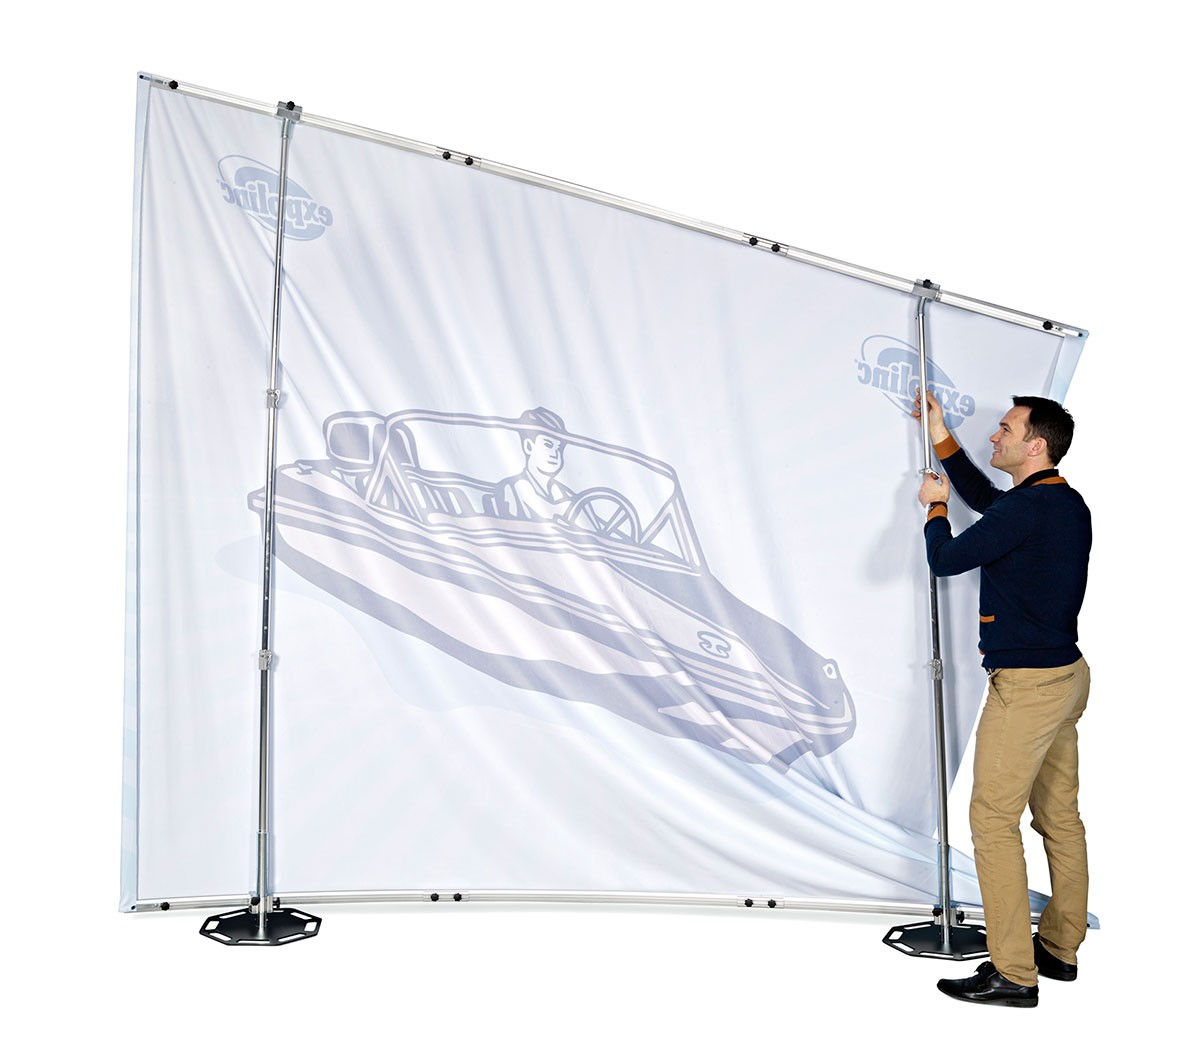 Expolinc Fabric System 20x8 Straight Wall